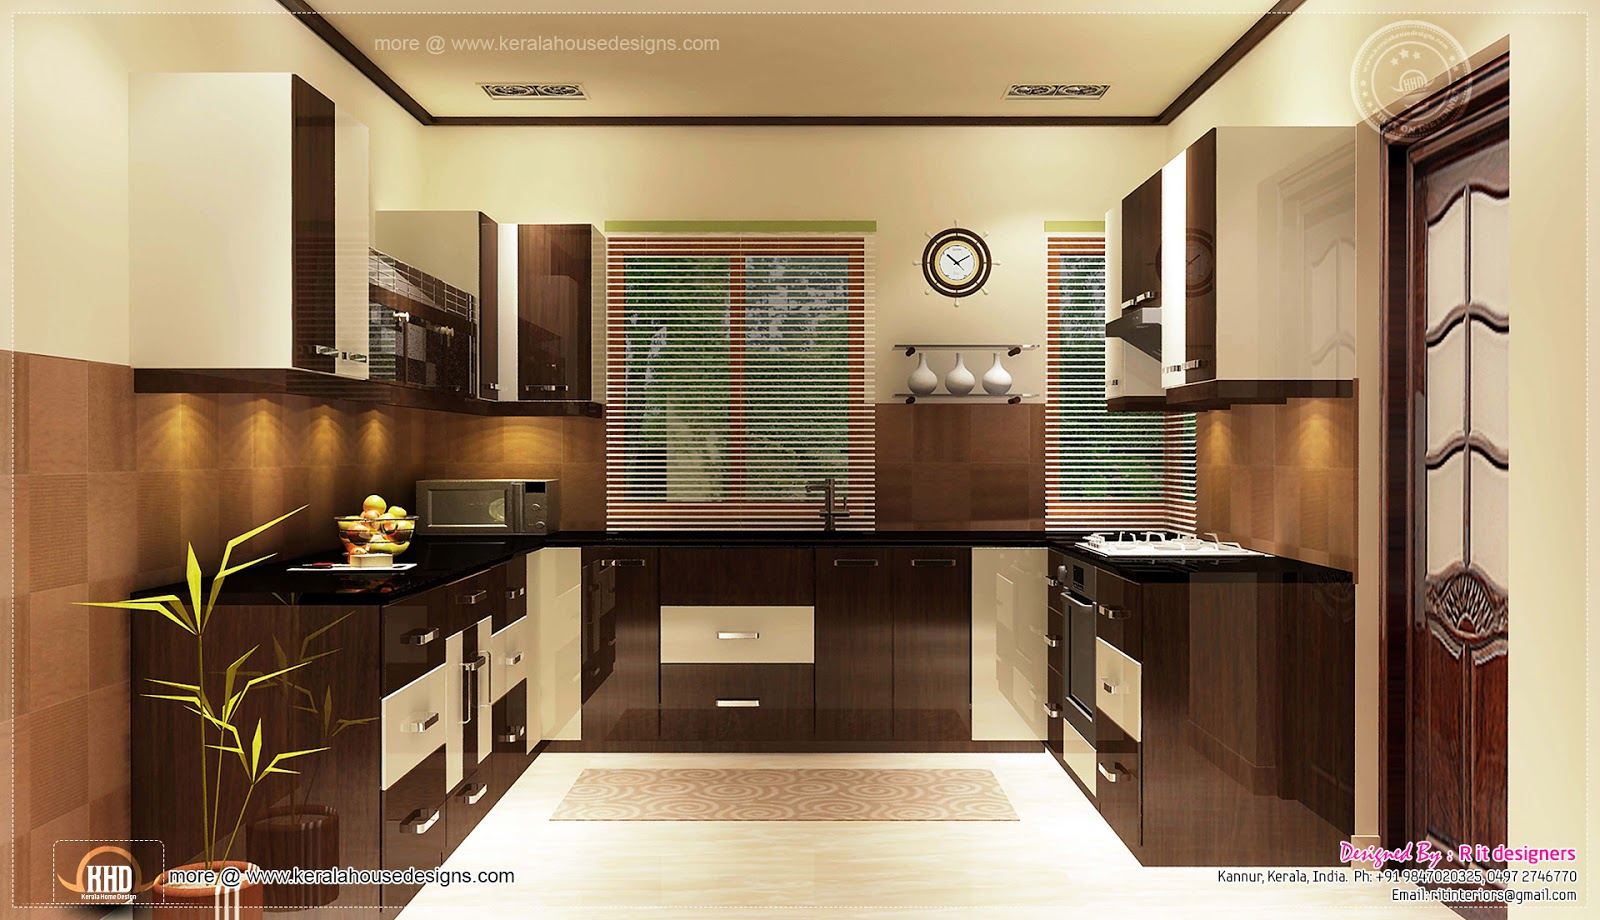 Home interior designs by rit designers kerala home for Inside designers homes